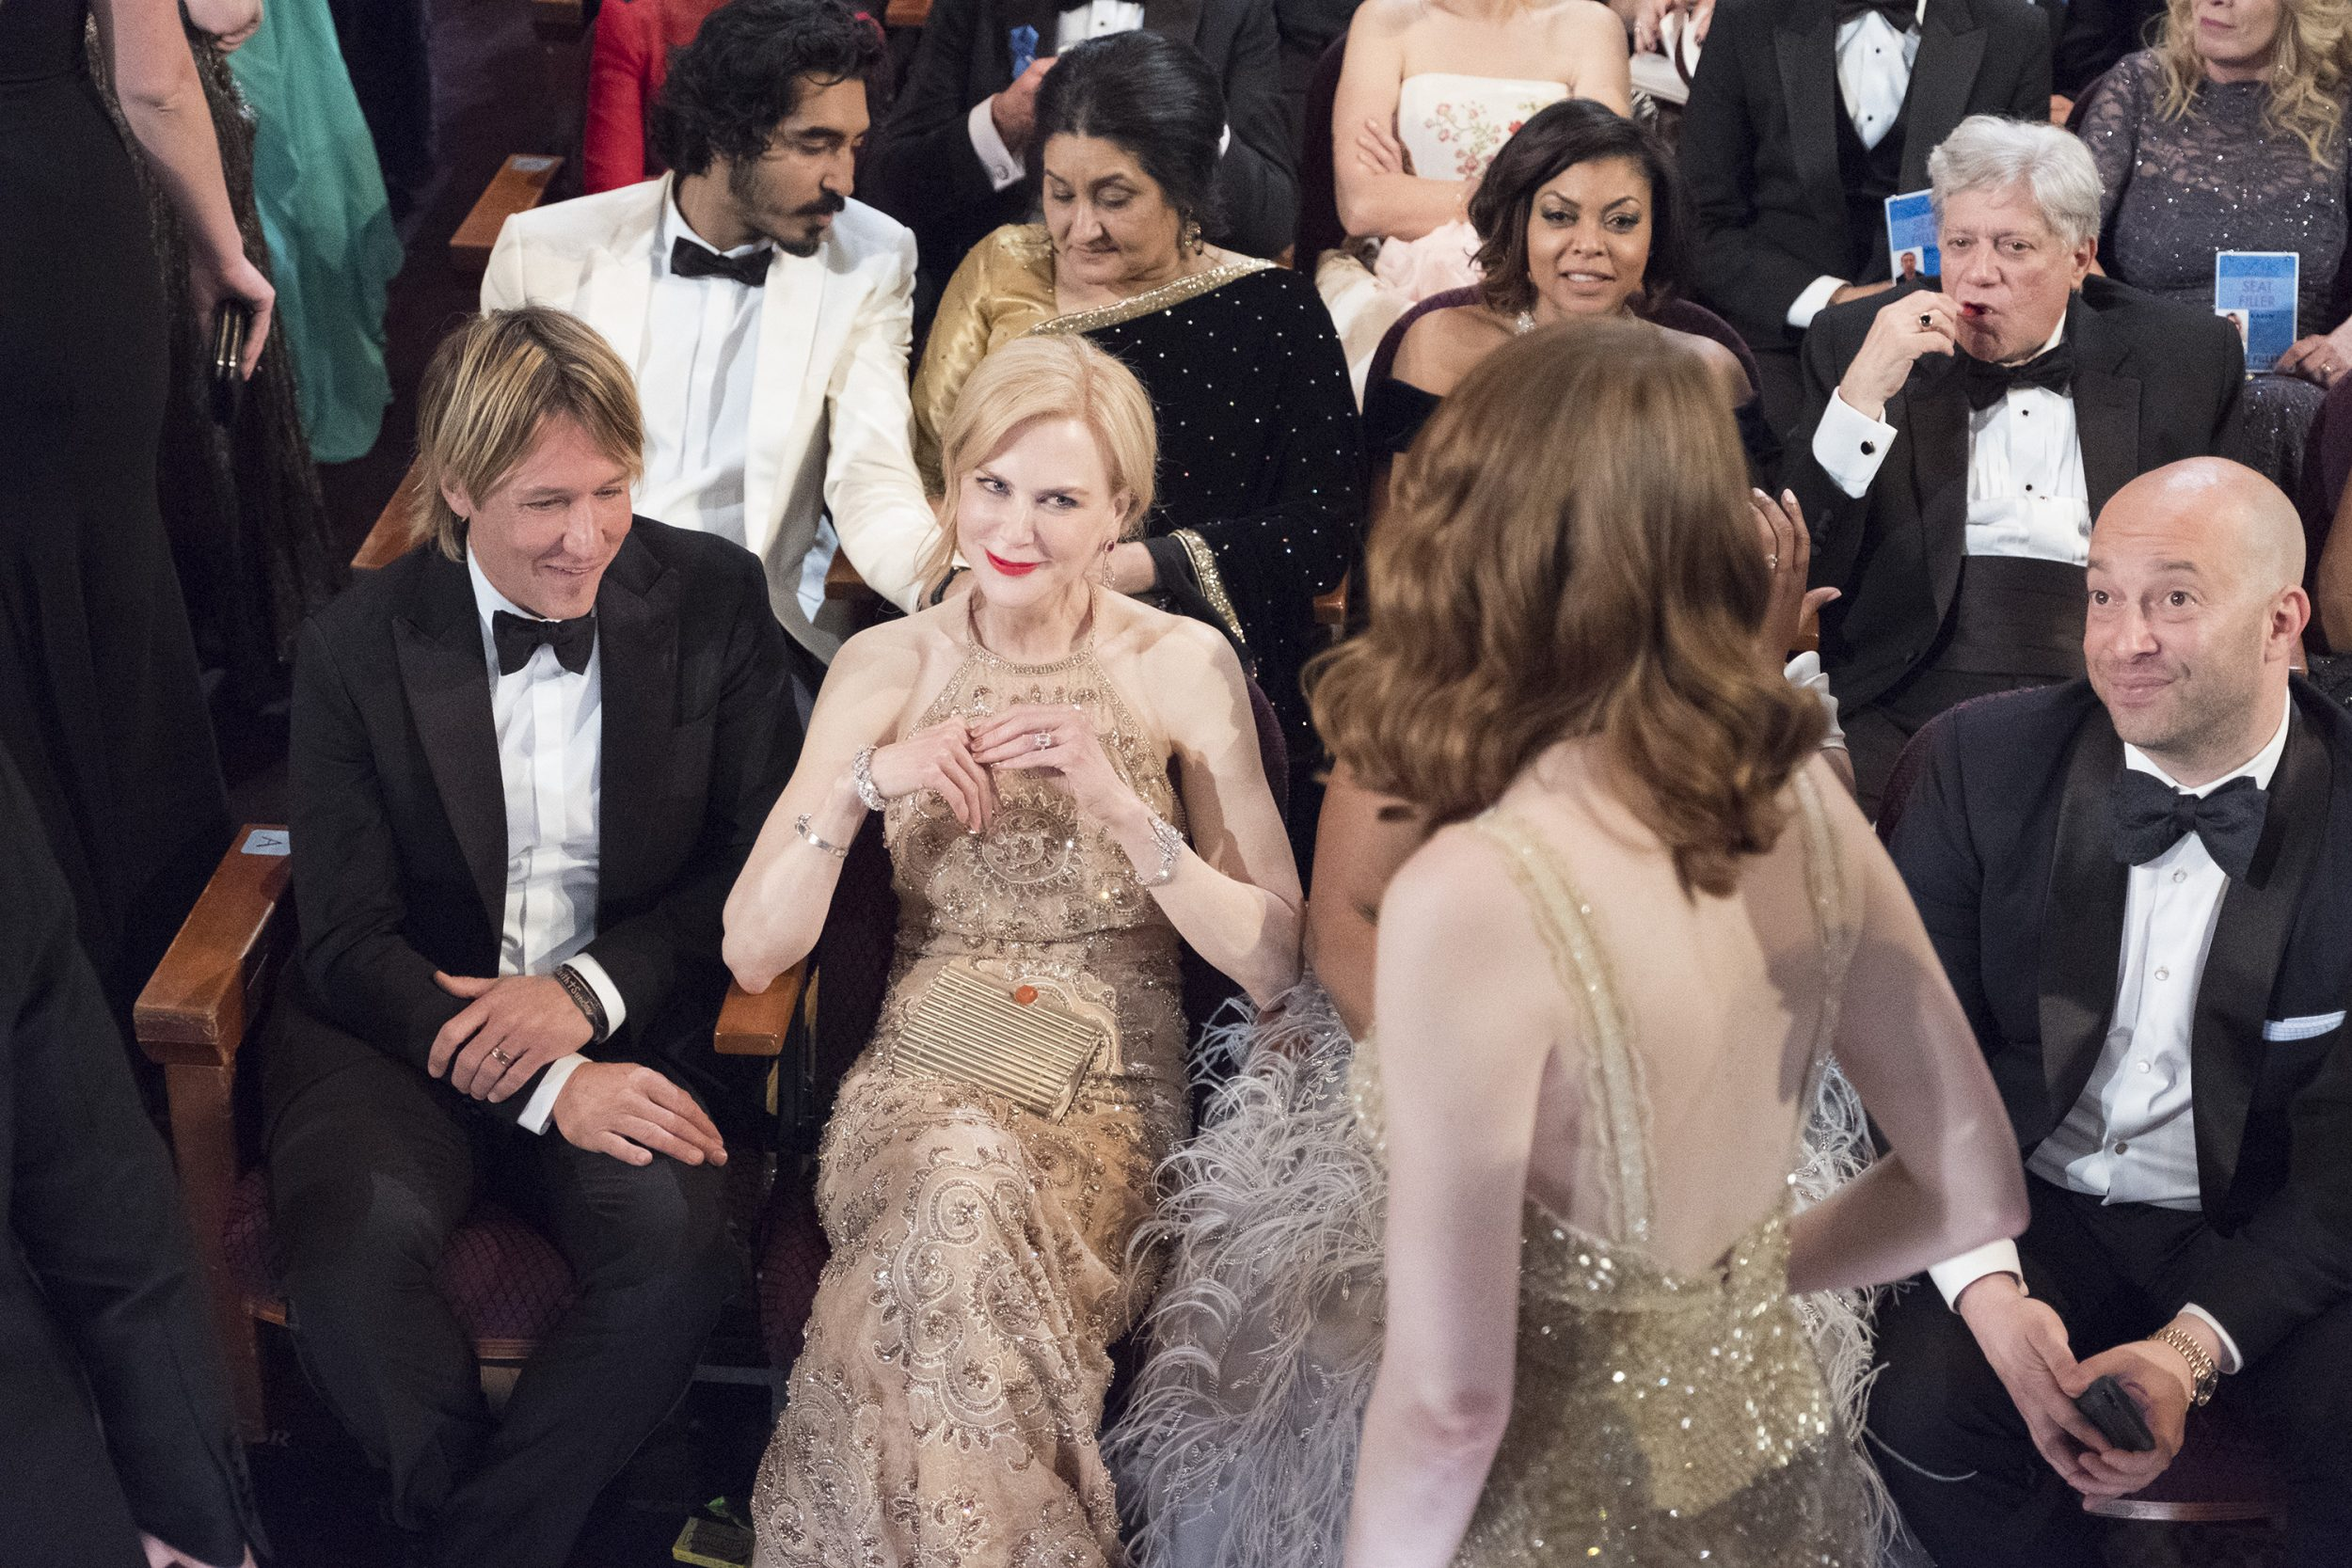 THE OSCARS(r) - The 89th Oscars(r)  broadcasts live on Oscar(r) SUNDAY, FEBRUARY 26, 2017, on the ABC Television Network. (ABC/Adam Rose) KEITH URBAN, NICOLE KIDMAN, EMMA STONE